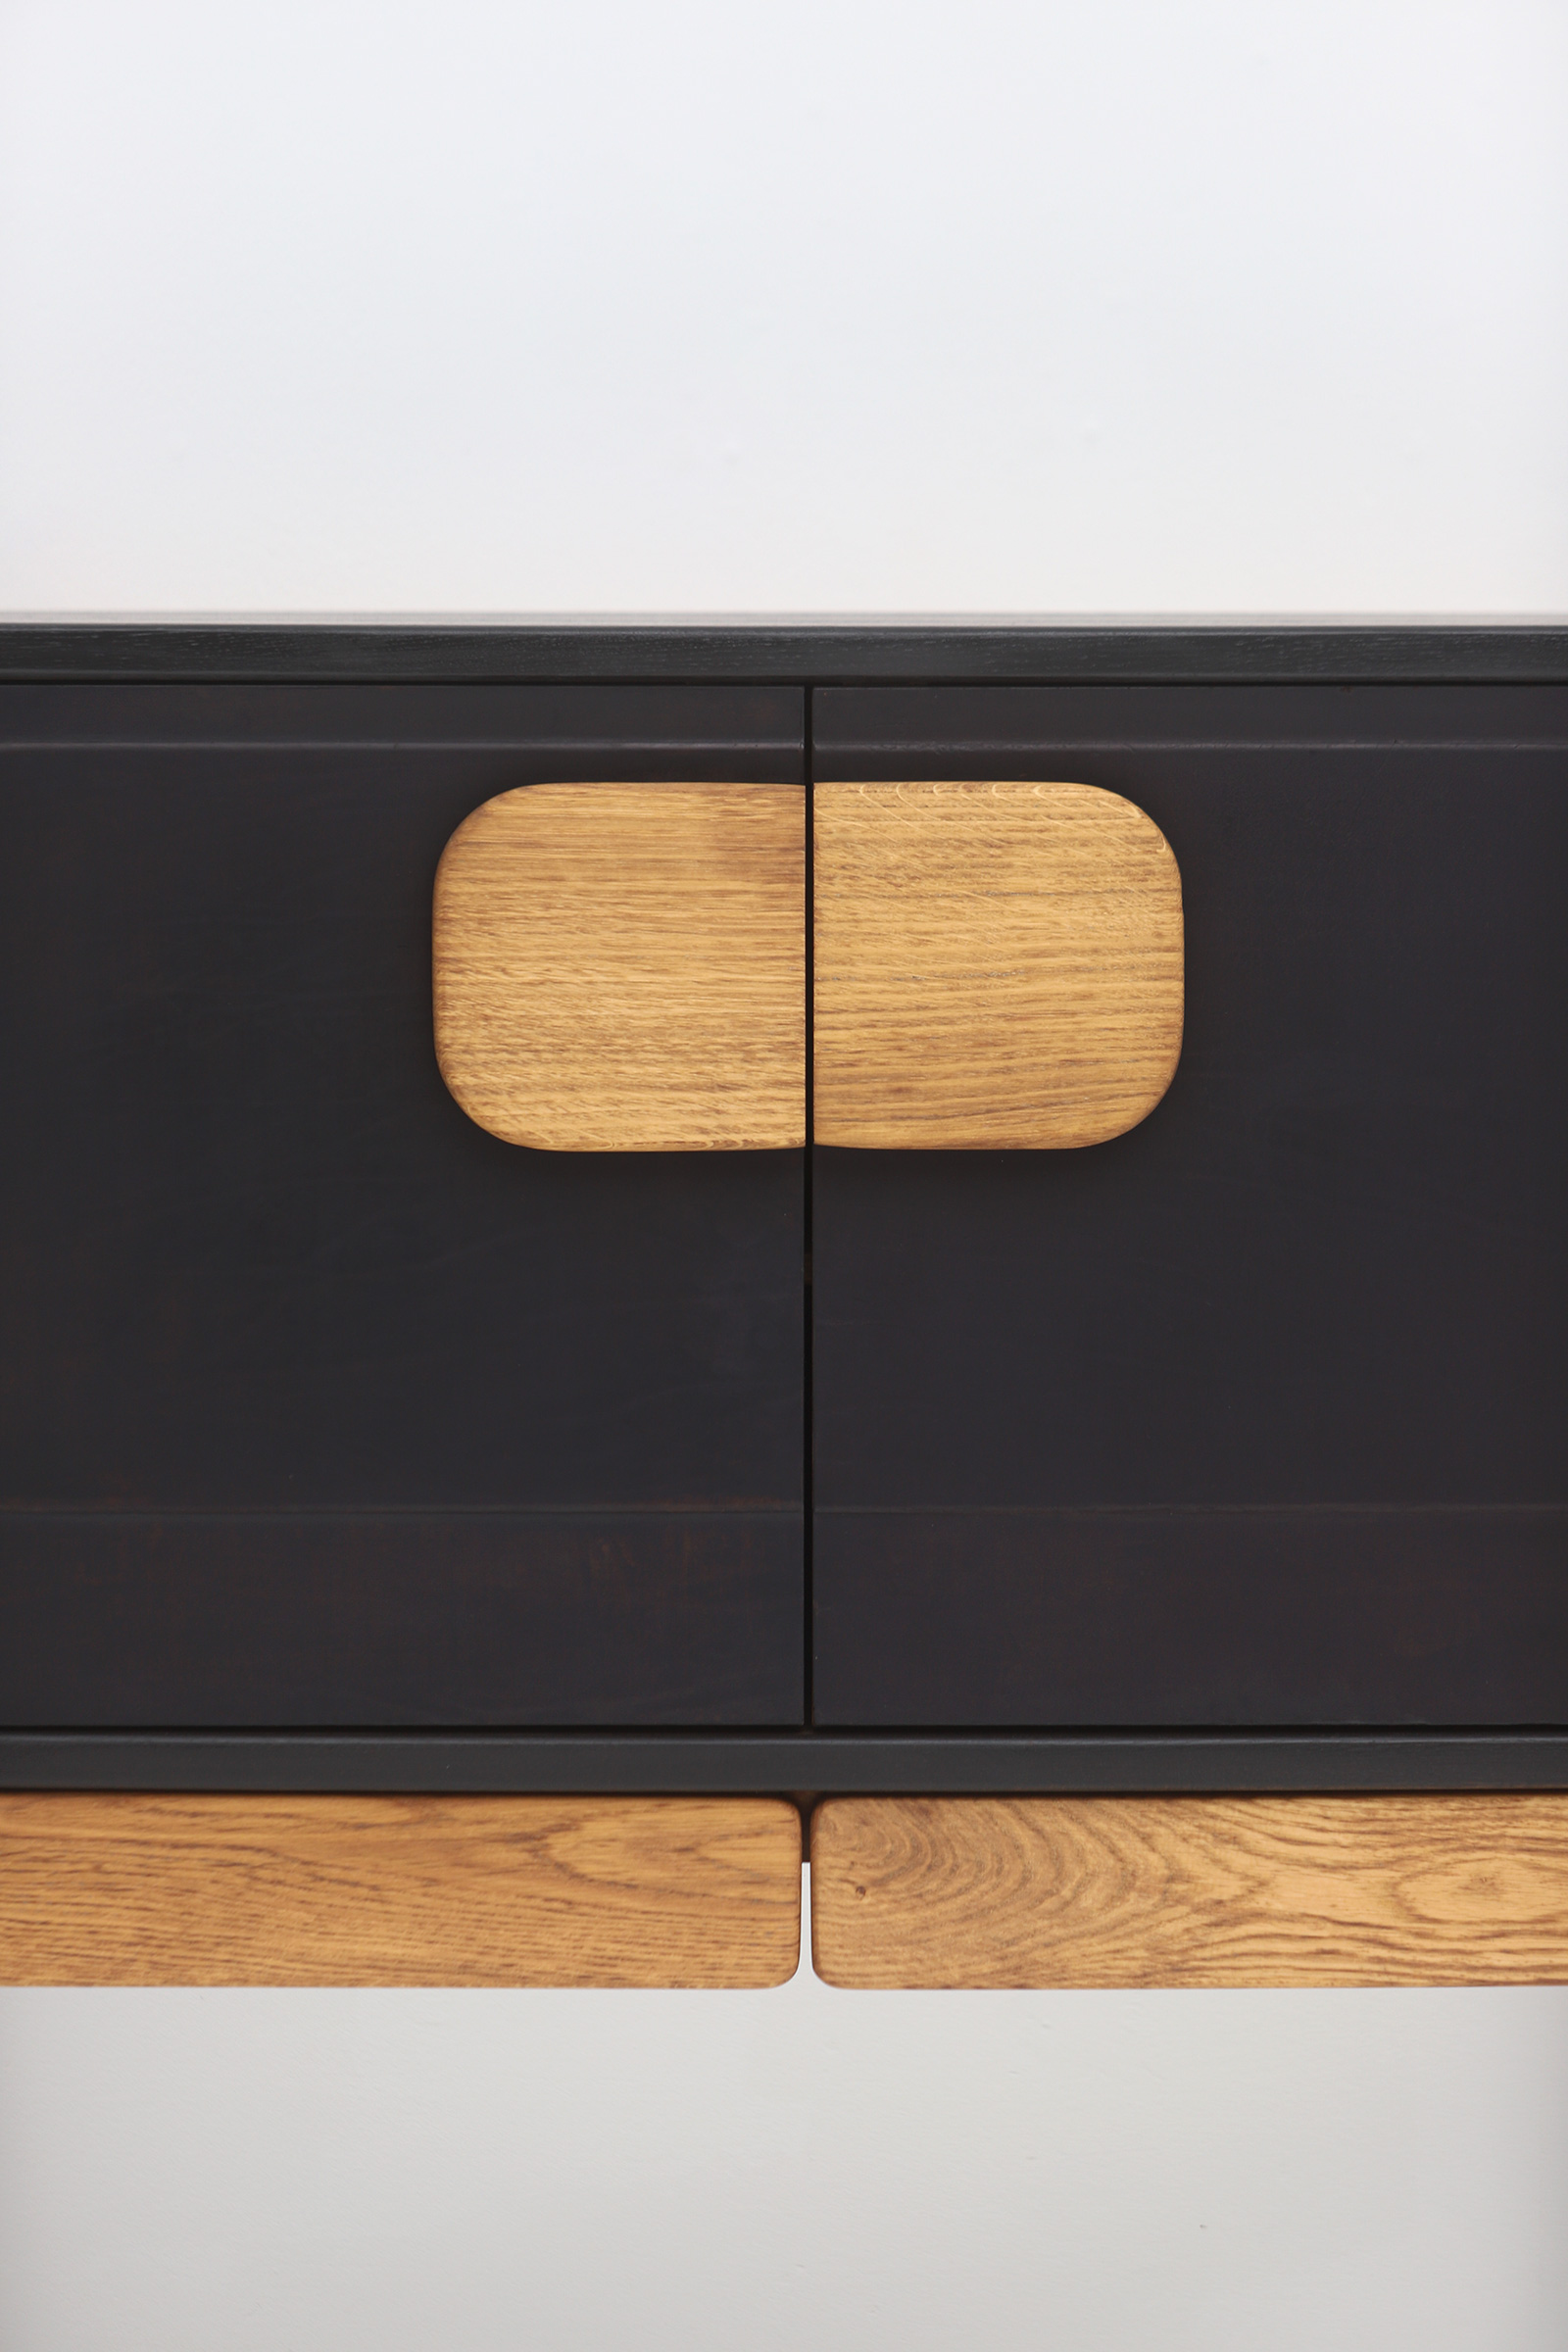 1970 tall wooden cabinetimage 5